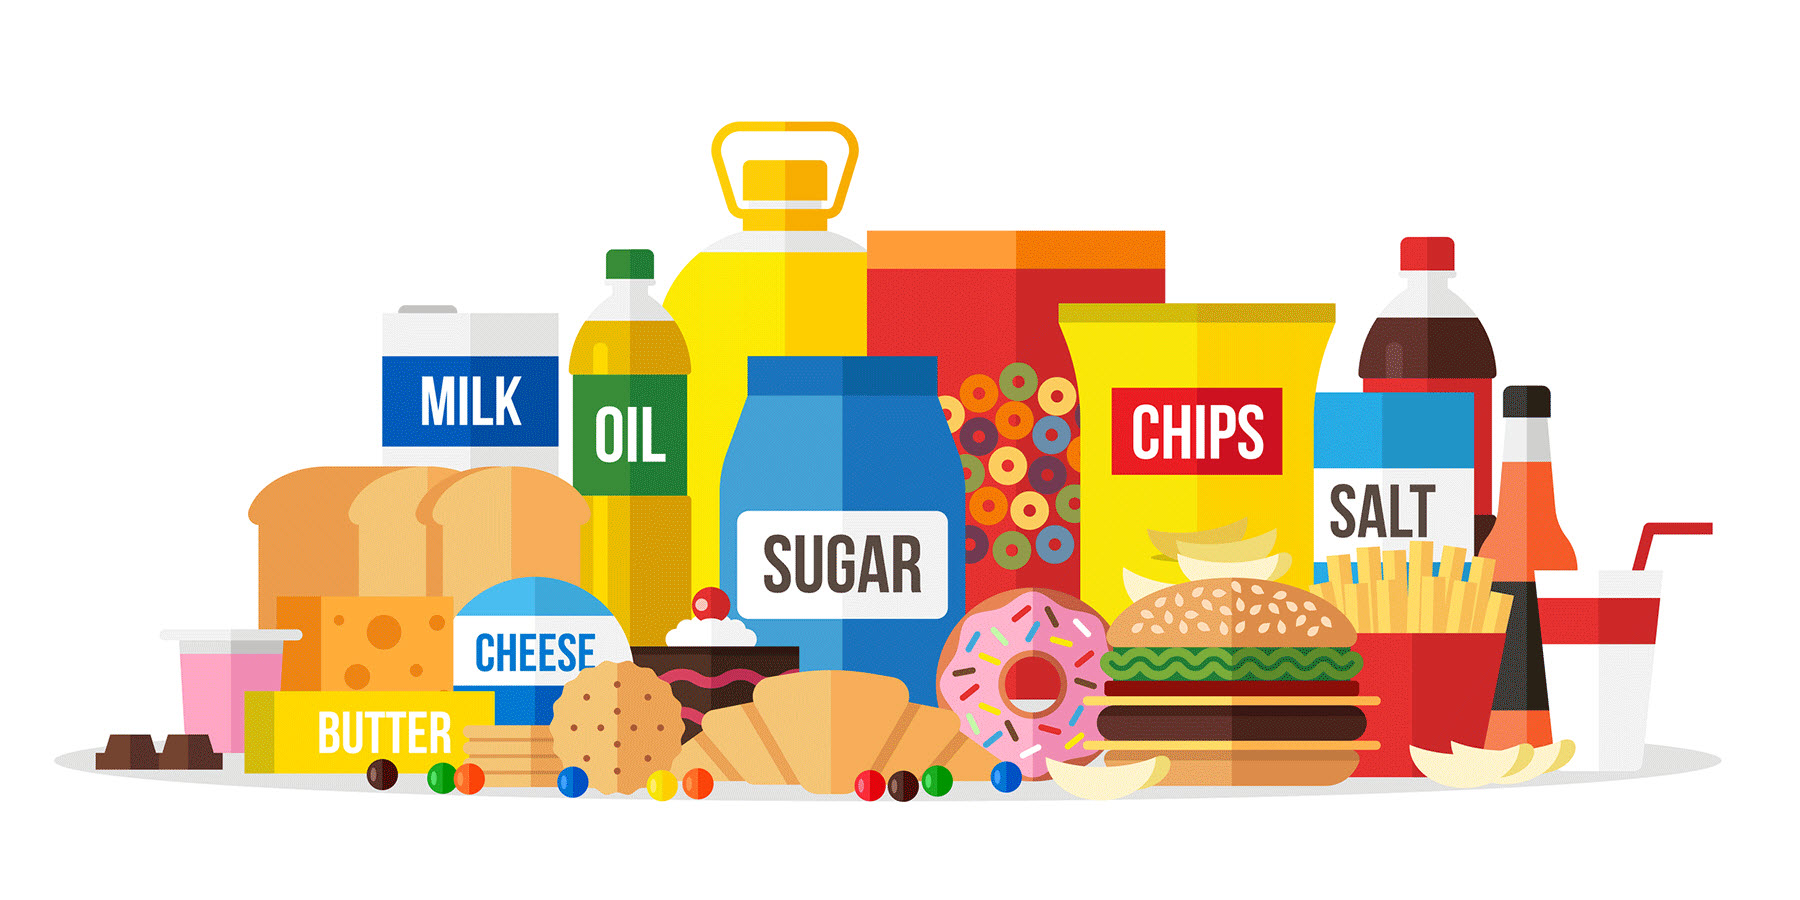 Clarity Needed in Classification Systems for Processed Foods